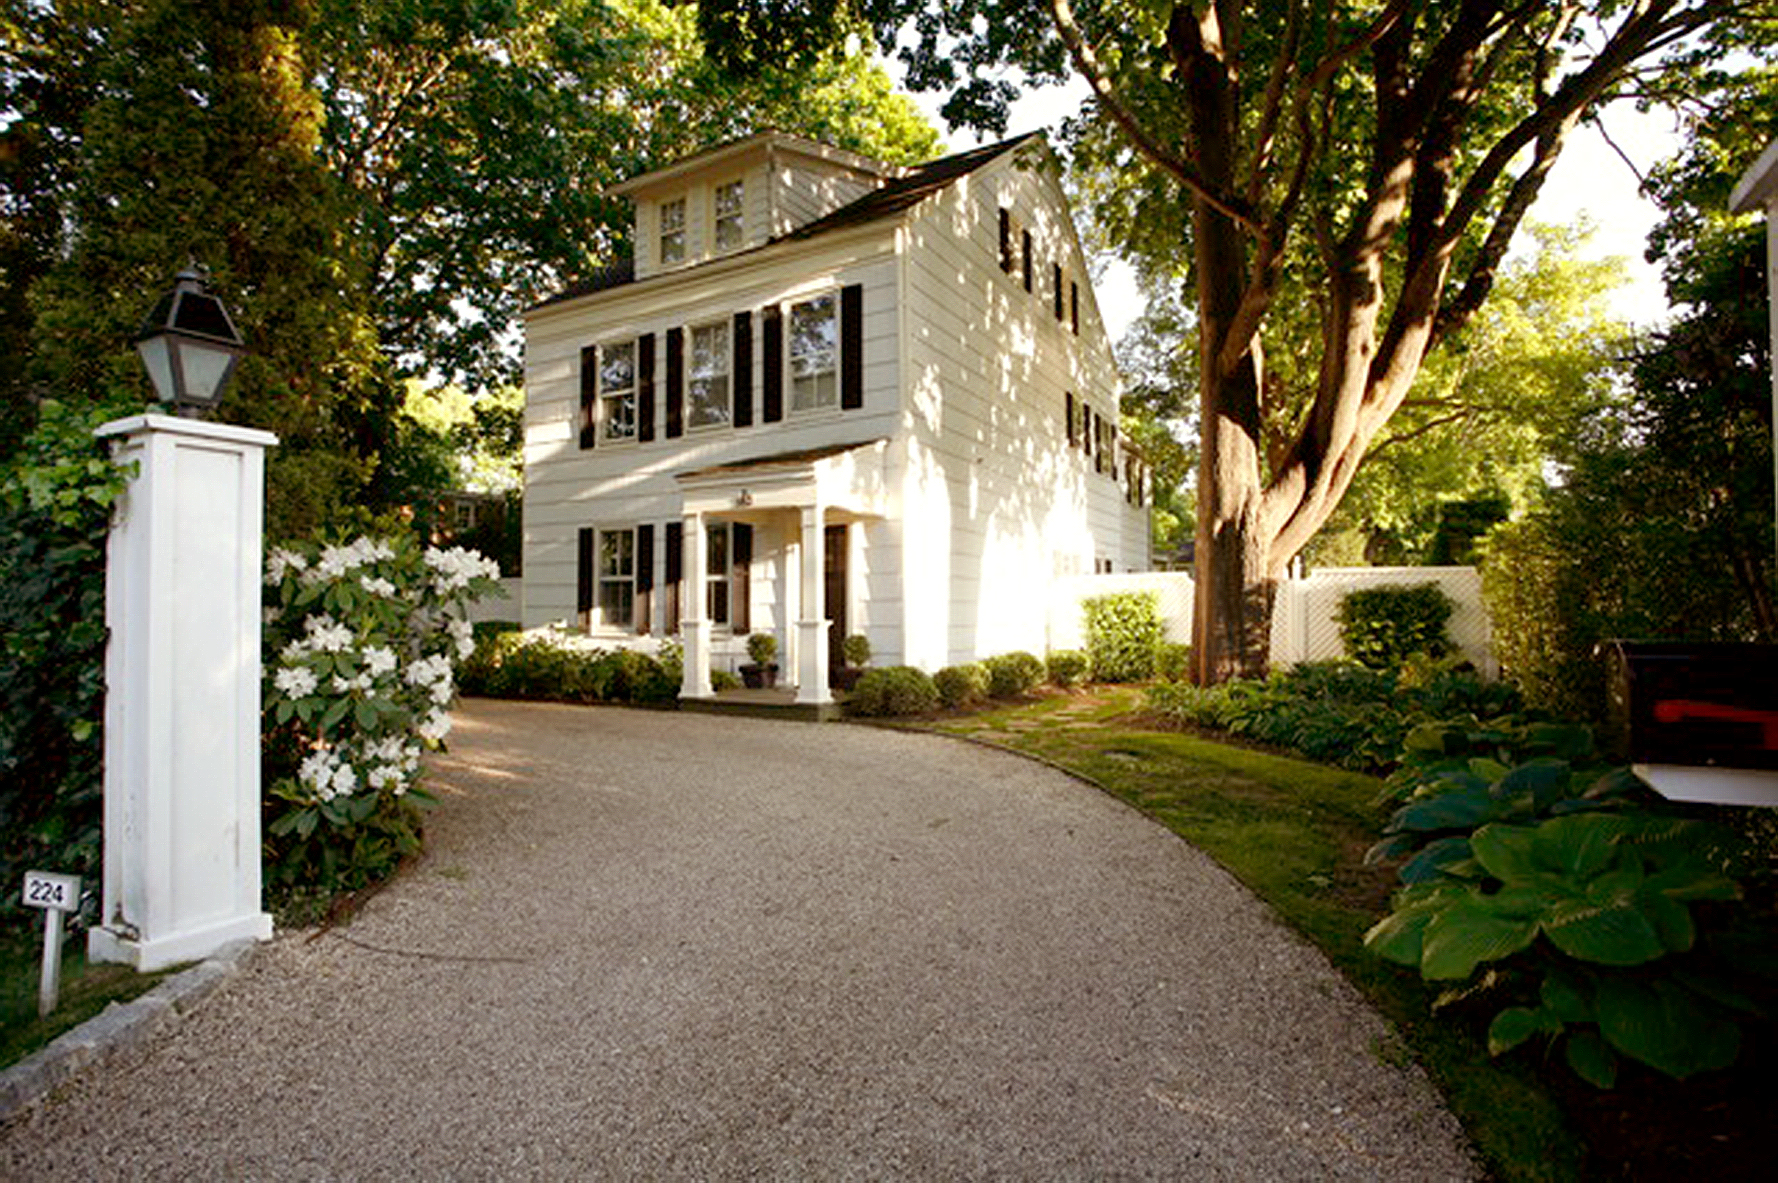 Victorian - Southampton, New York Transitional style interiors and bursts of color